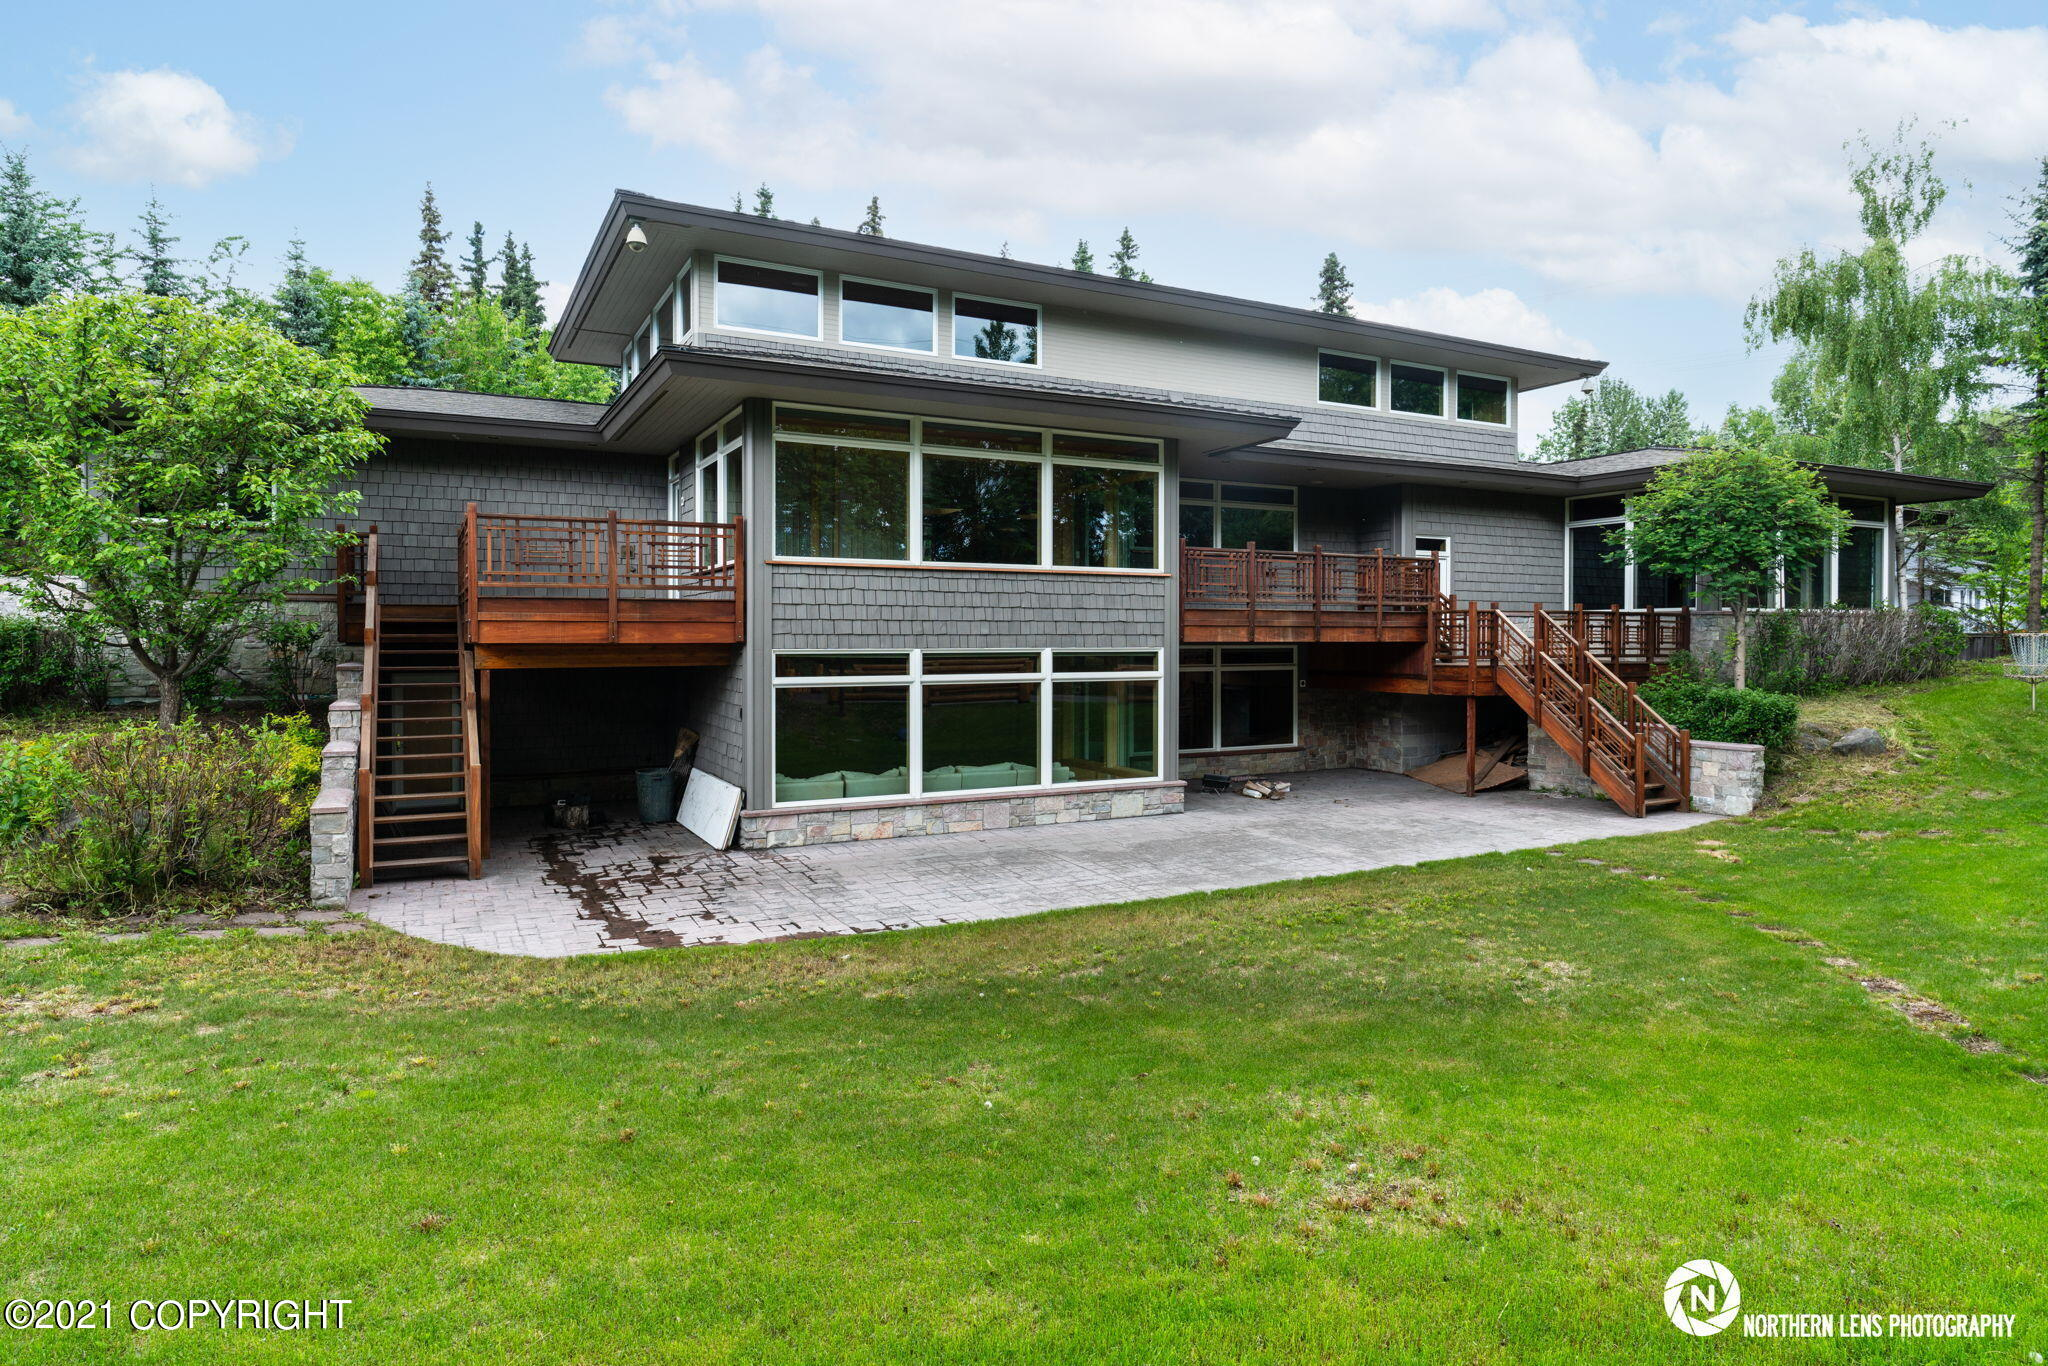 4-Bedroom House In South Anchorage